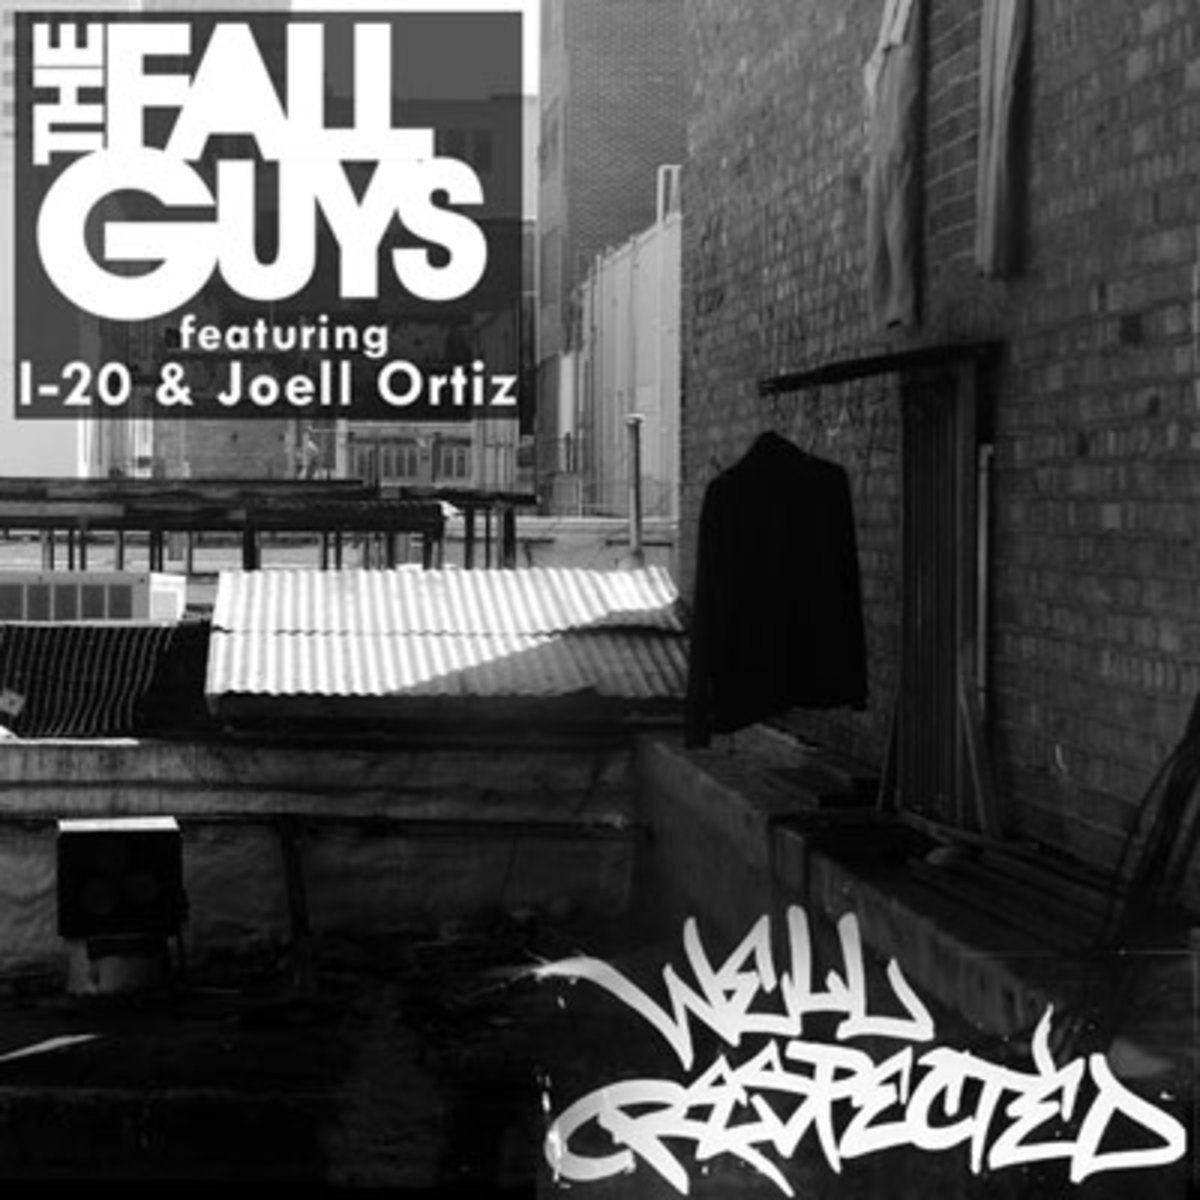 fallguys-wellrespected.jpg